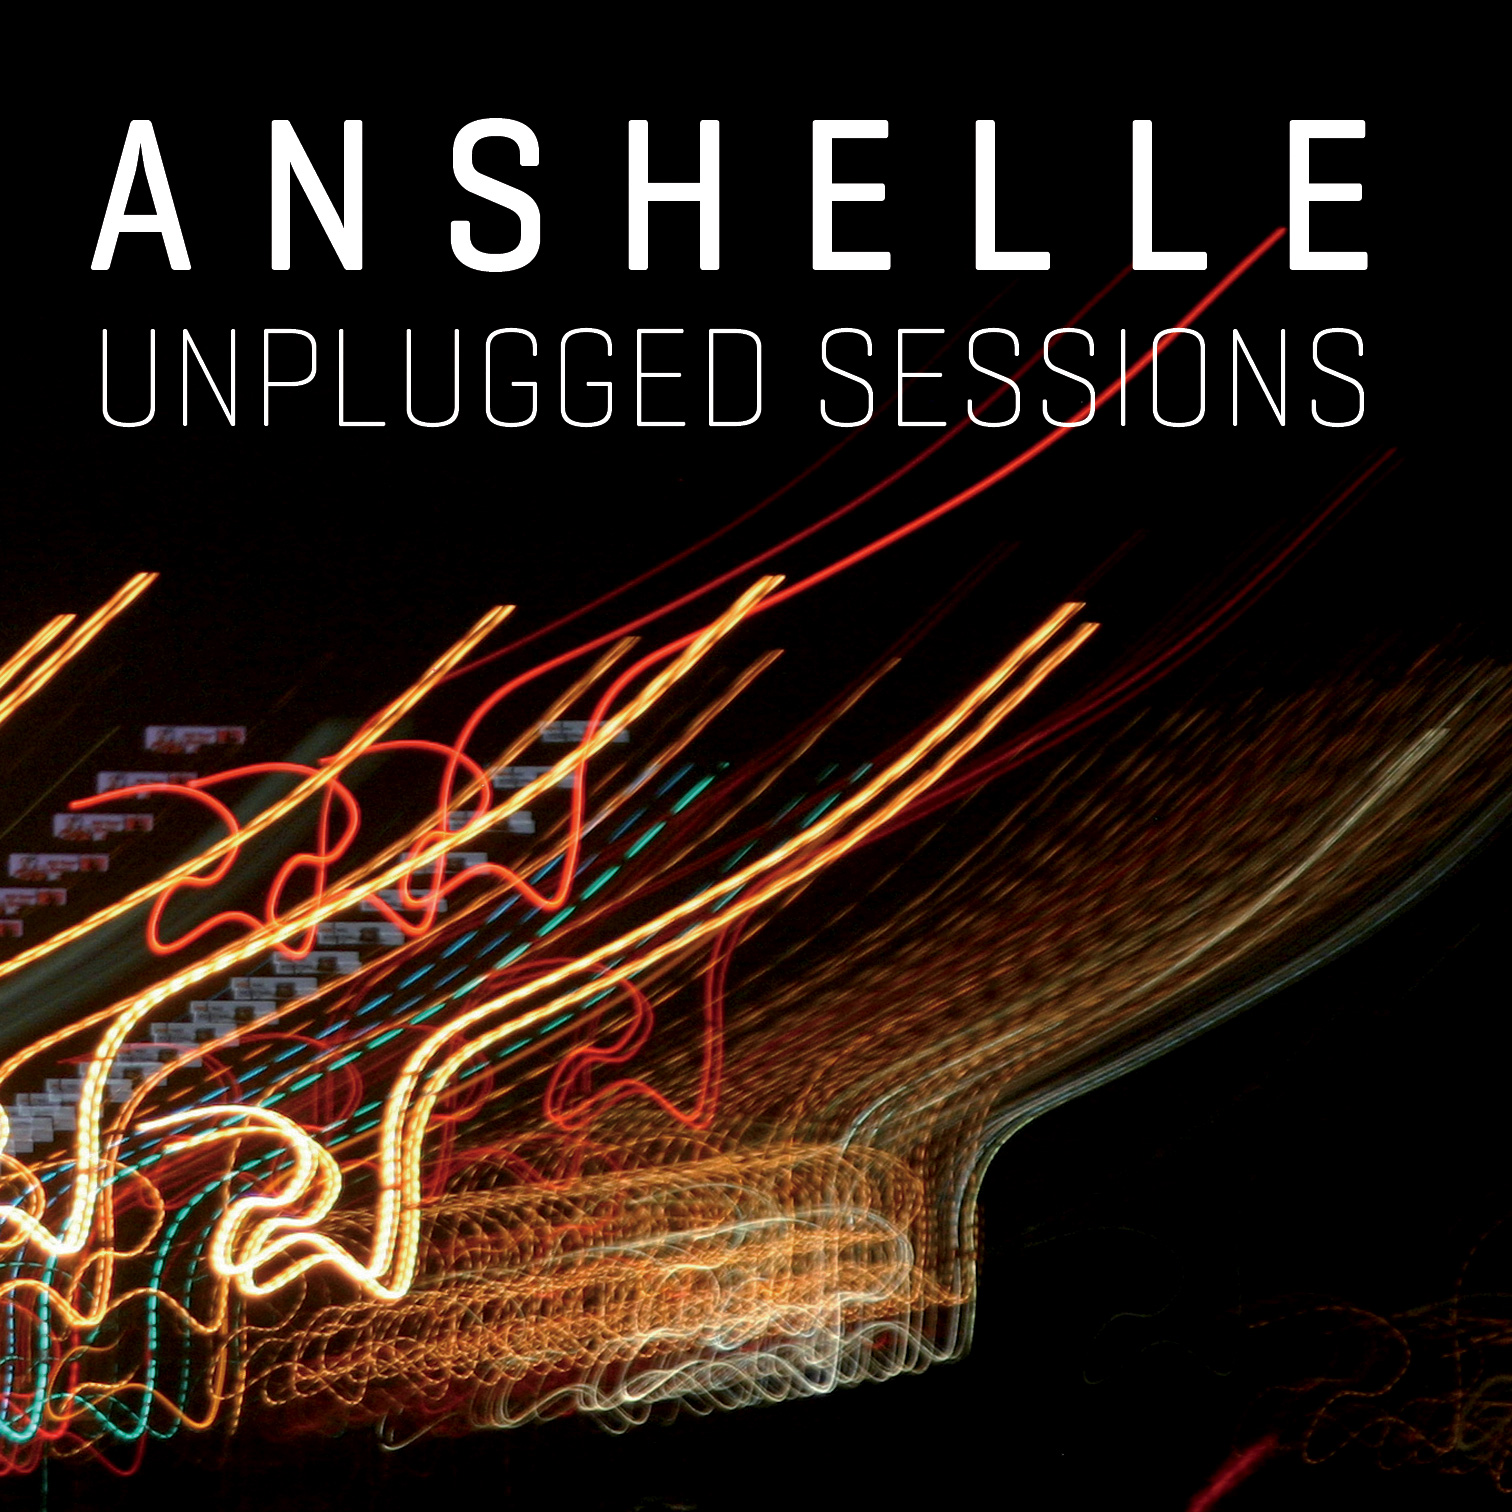 Unplugged Sessions Album Cover